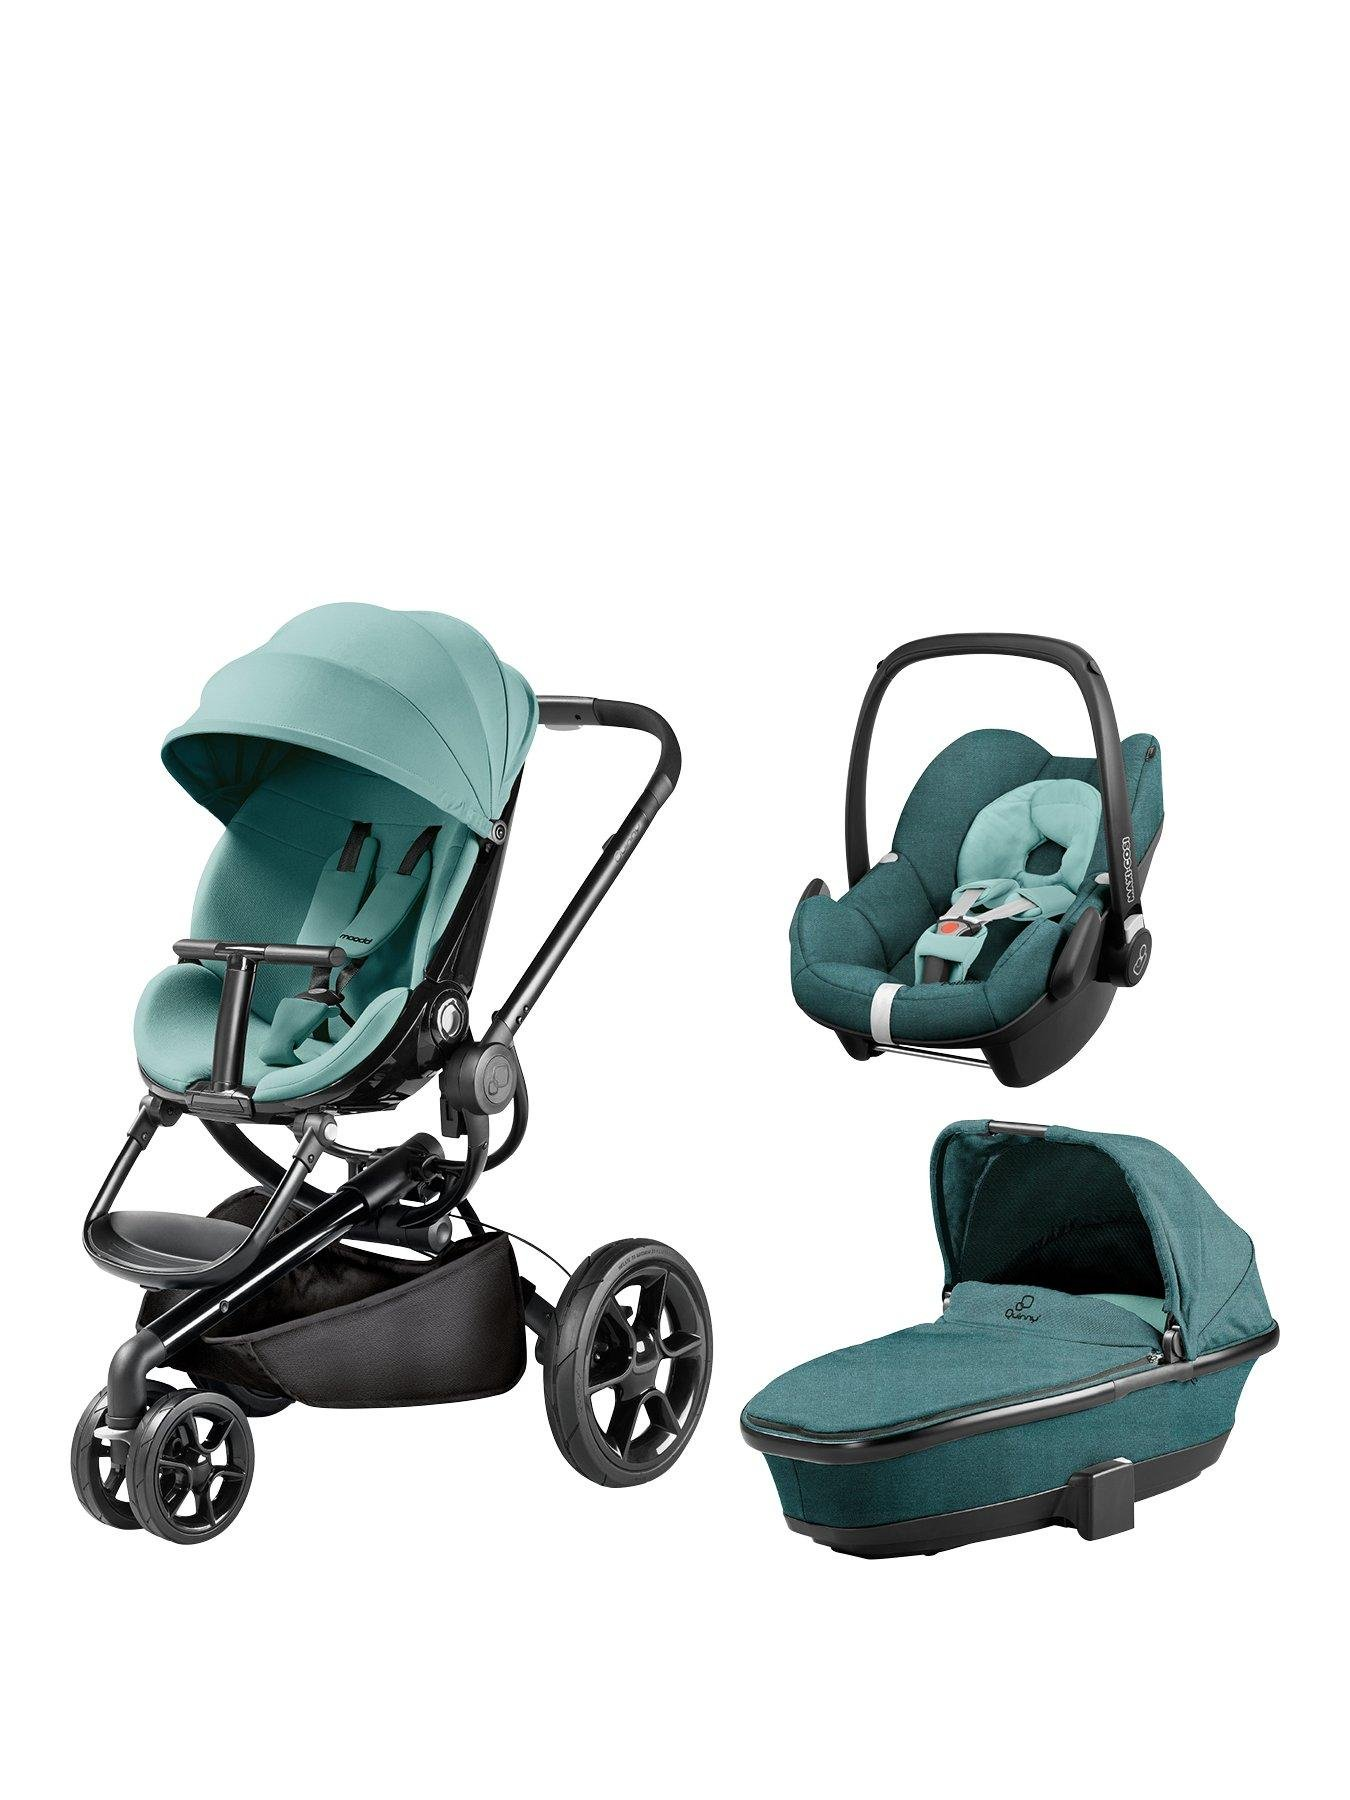 Quinny Quinny Moodd Pushchair, Foldable Carrycot, Pebble Car Seat Package - Novel Nile Quinny  5